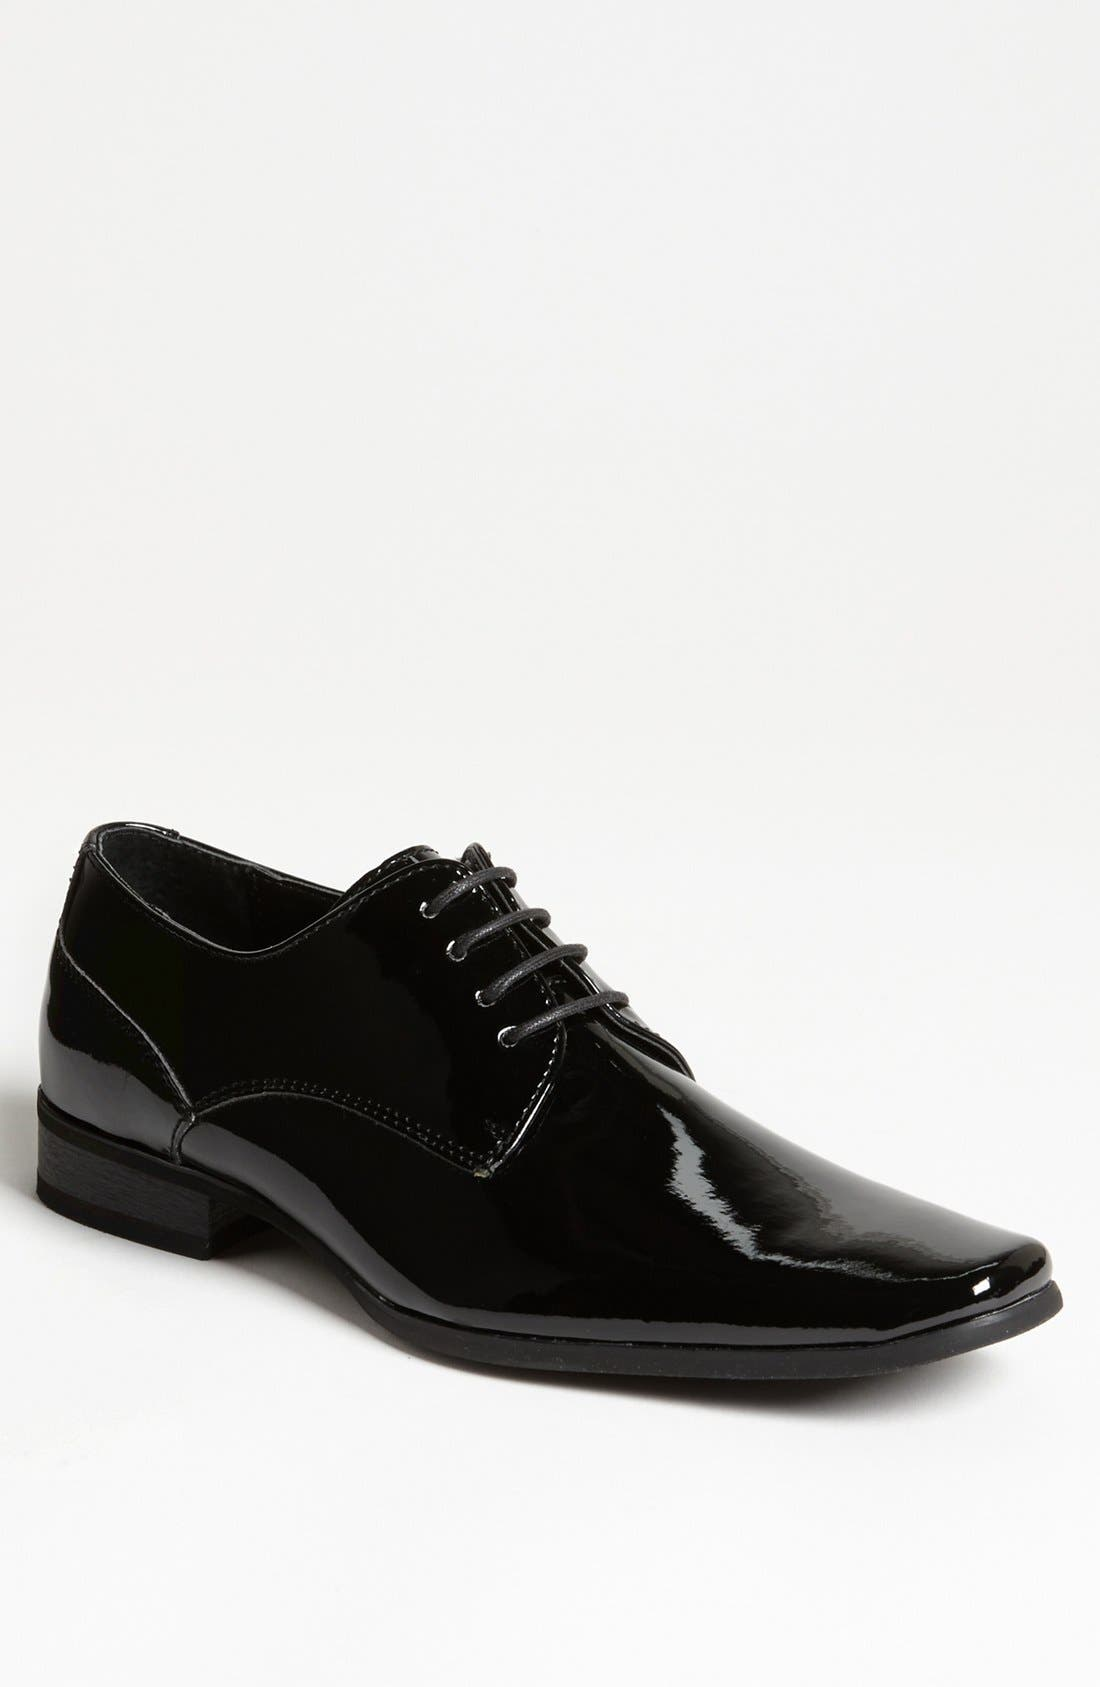 CALVIN KLEIN 'Brodie' Plain Toe Derby, Main, color, BLACK PATENT